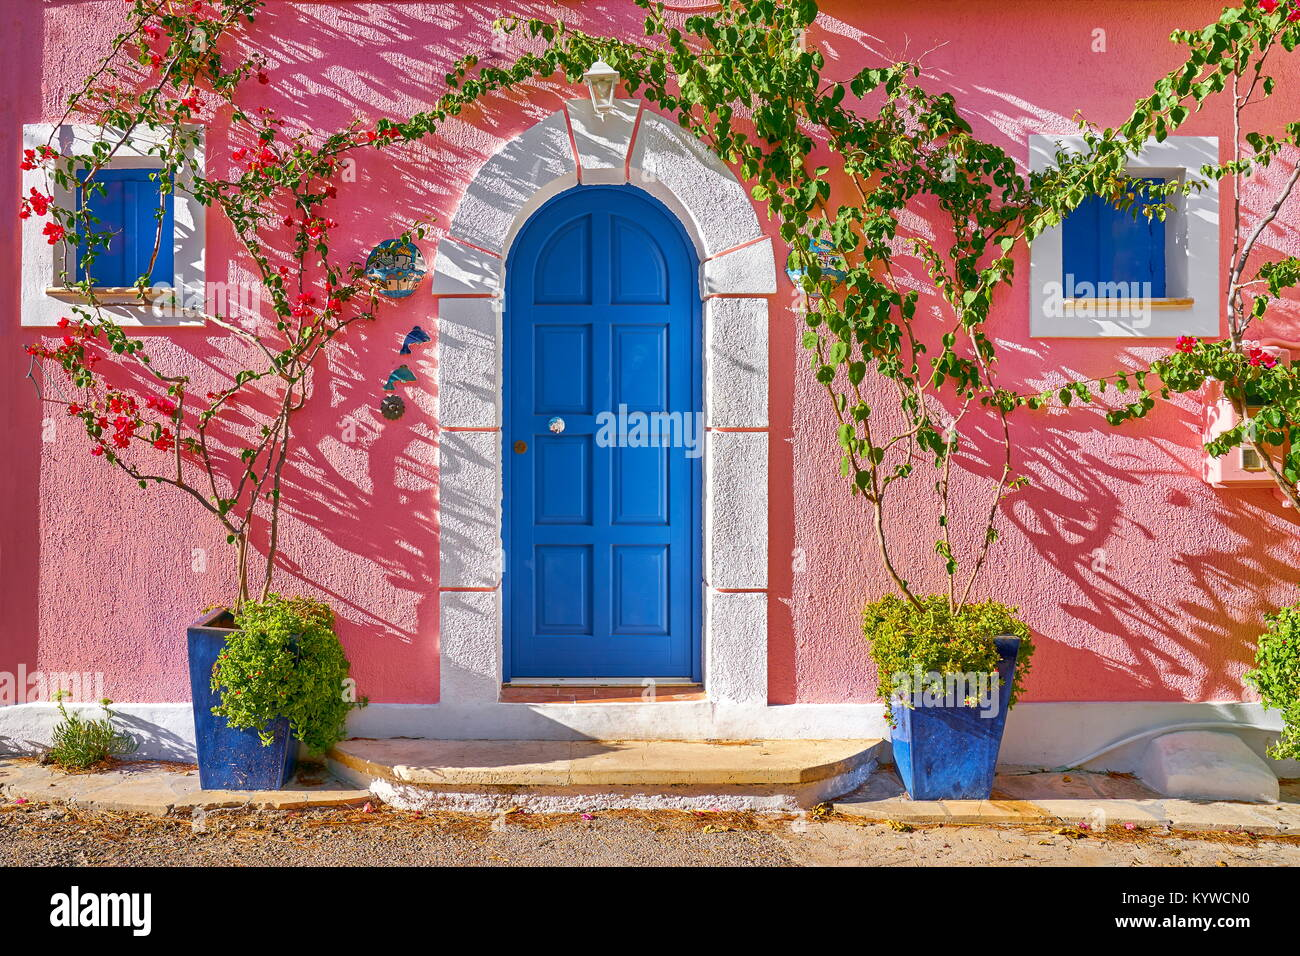 Traditional greek house, Assos village, Kefalonia Island, Greece - Stock Image